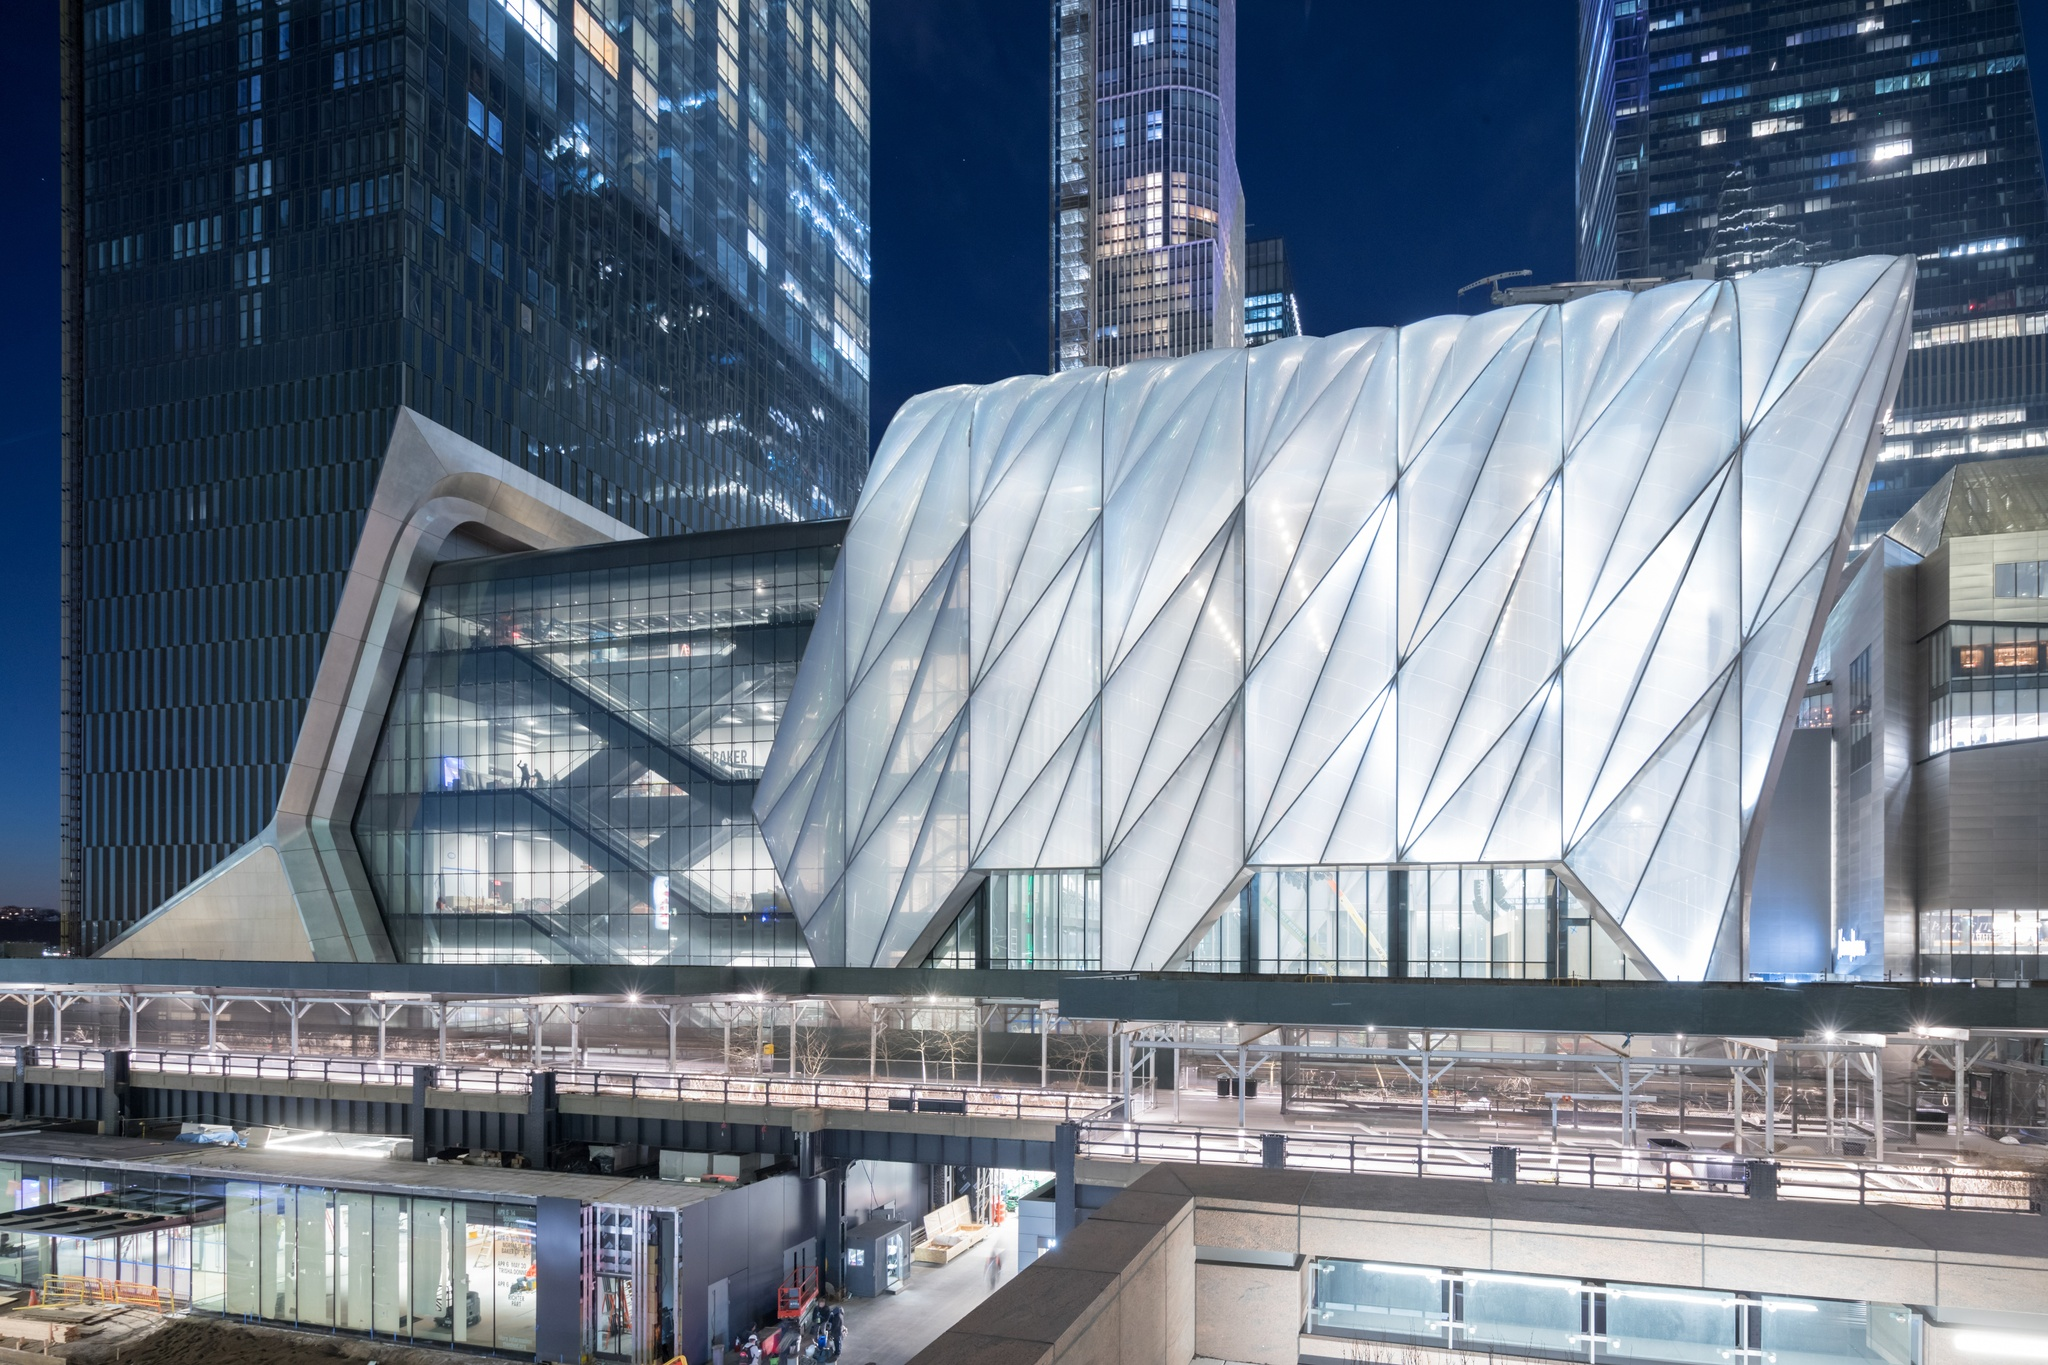 The Shed's Bloomberg Building, April 2019. |  Photo: Iwan Baan. Project Design Credit: Diller Scofidio + Renfro, Lead Architect, and Rockwell Group, Collaborating Architect.